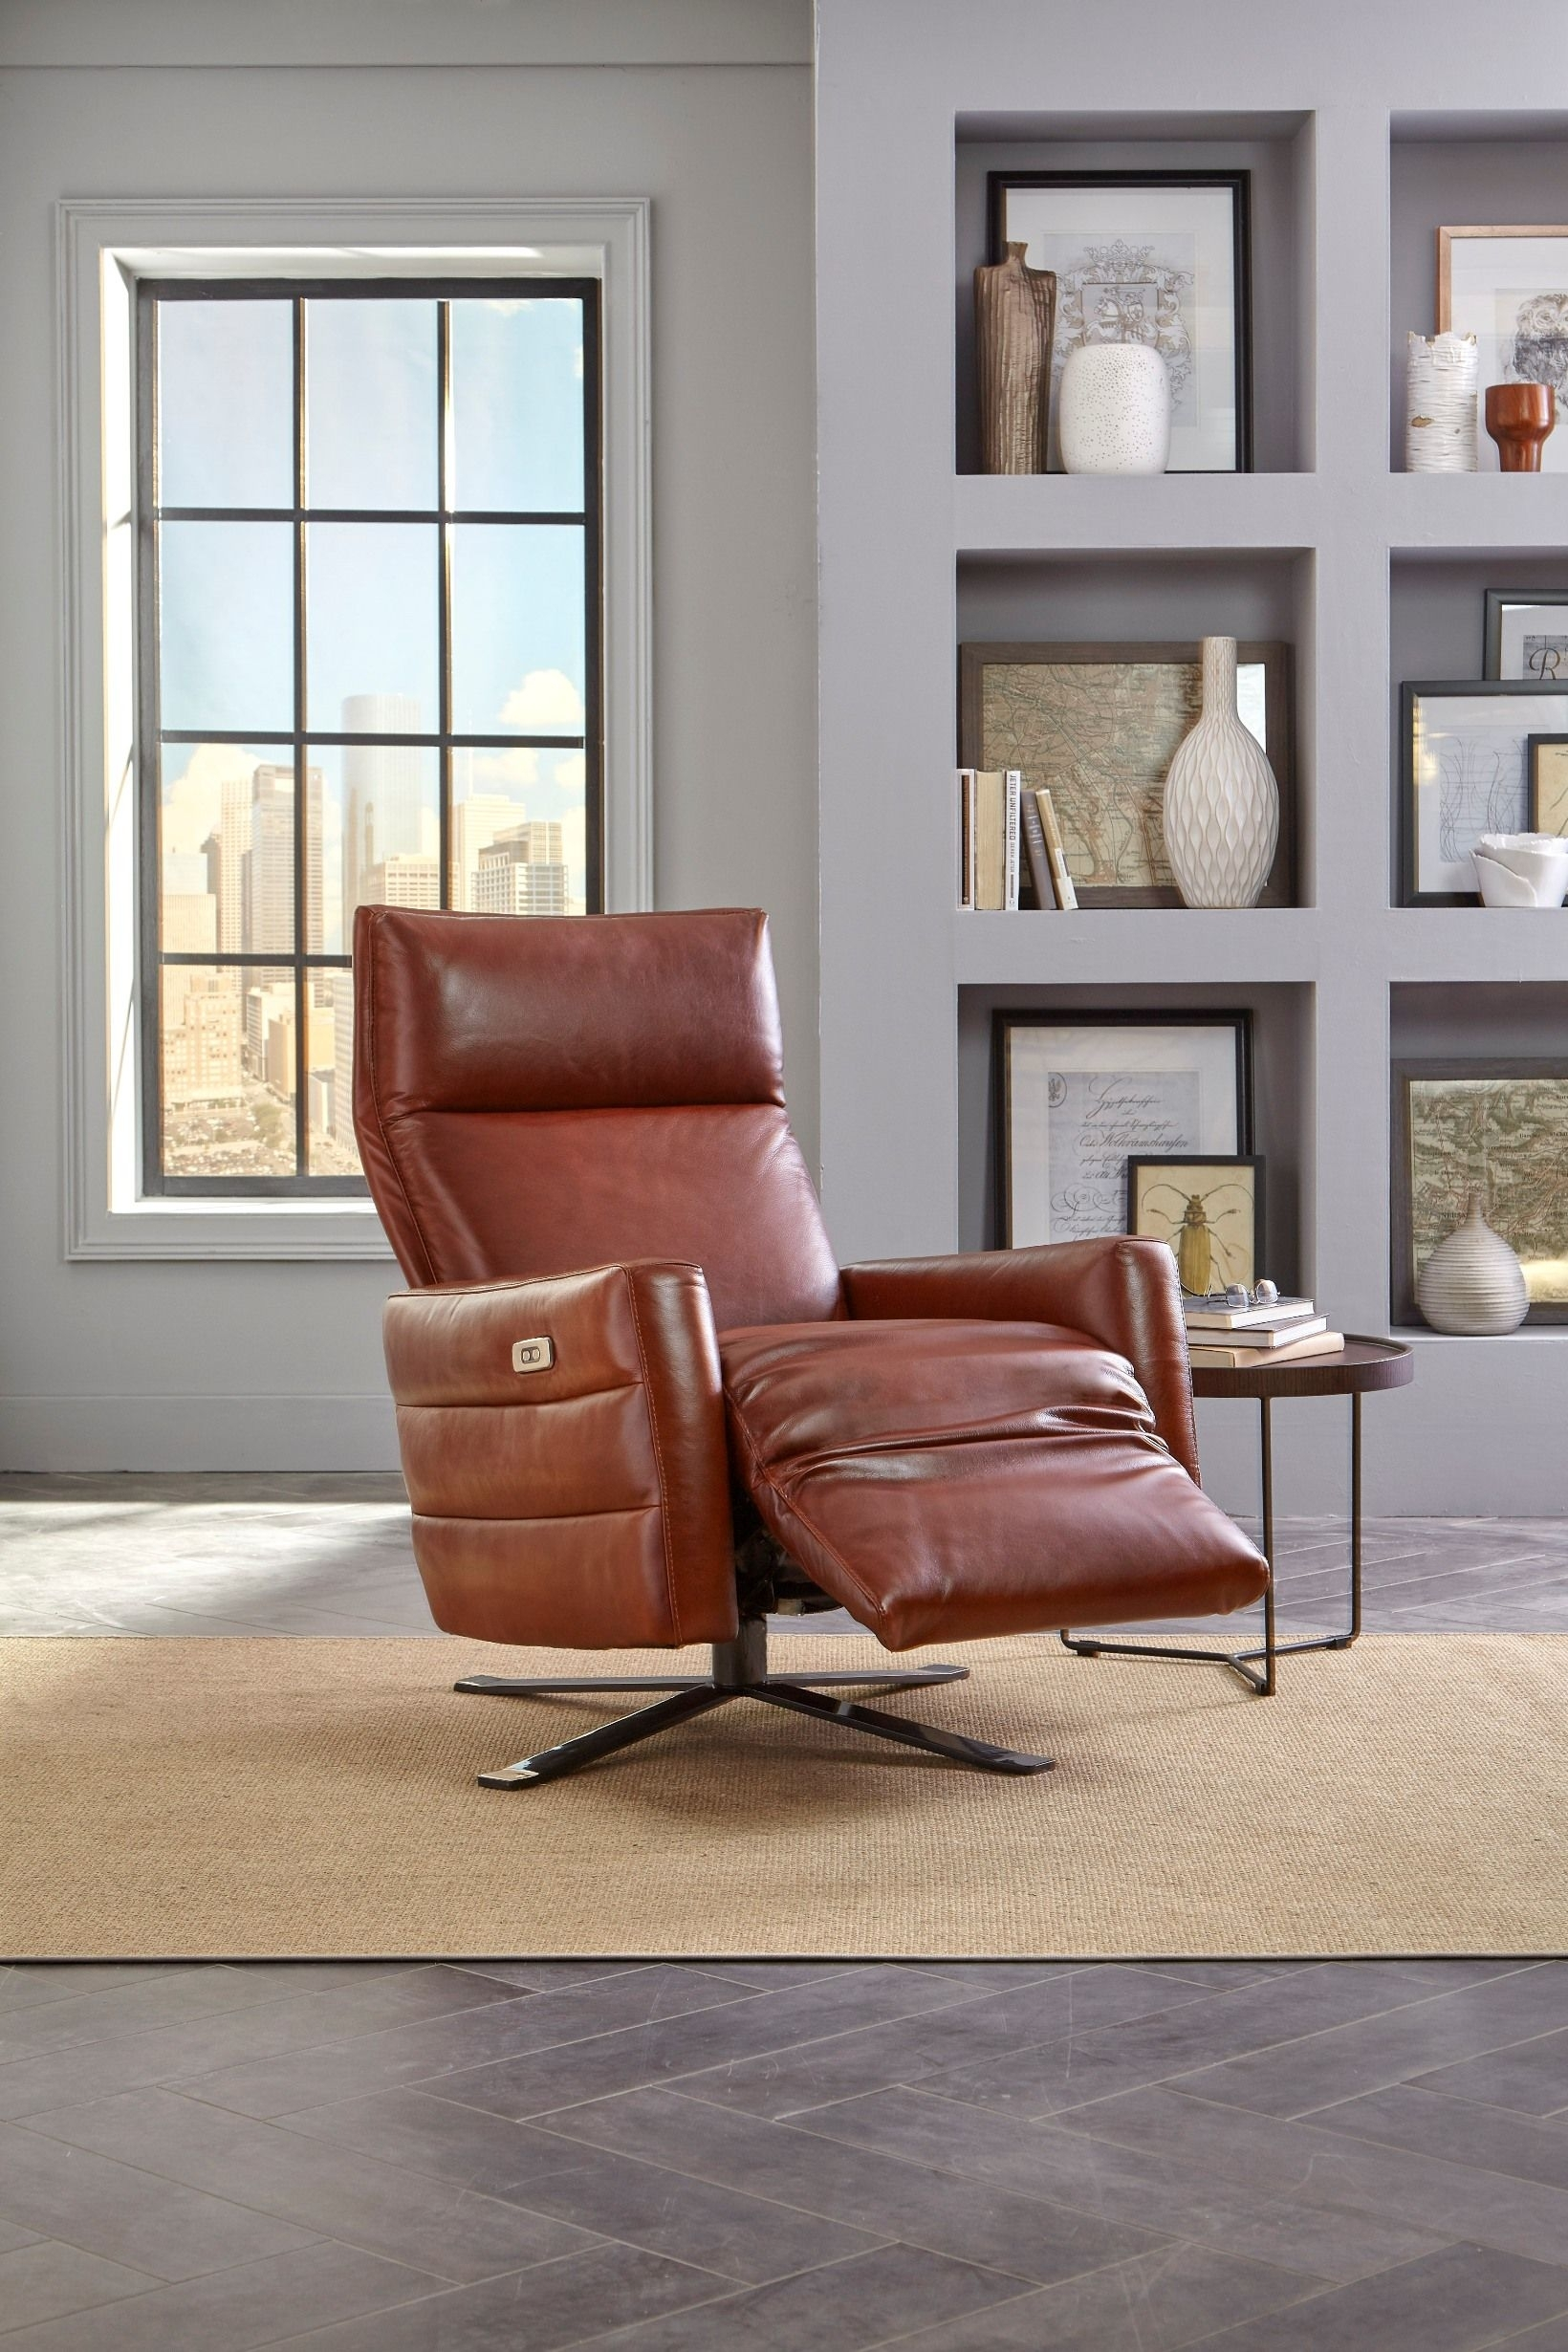 Peterlin (Peterlin516) On Pinterest inside Clyde Grey Leather 3 Piece Power Reclining Sectionals With Pwr Hdrst & Usb (Image 24 of 30)